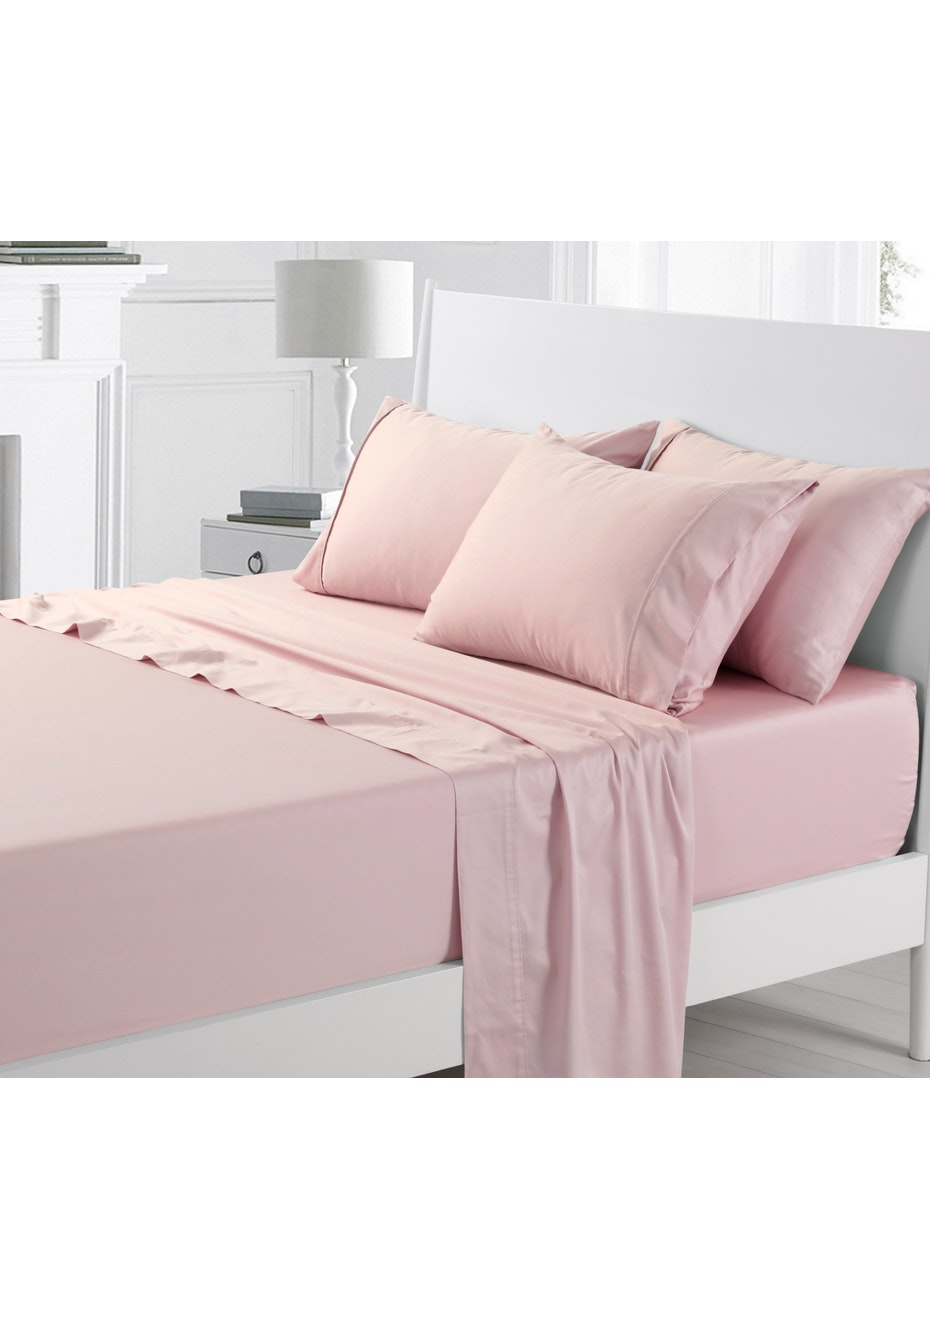 Rose Pink 300TC Cotton Sateen Sheet Set - Queen Bed